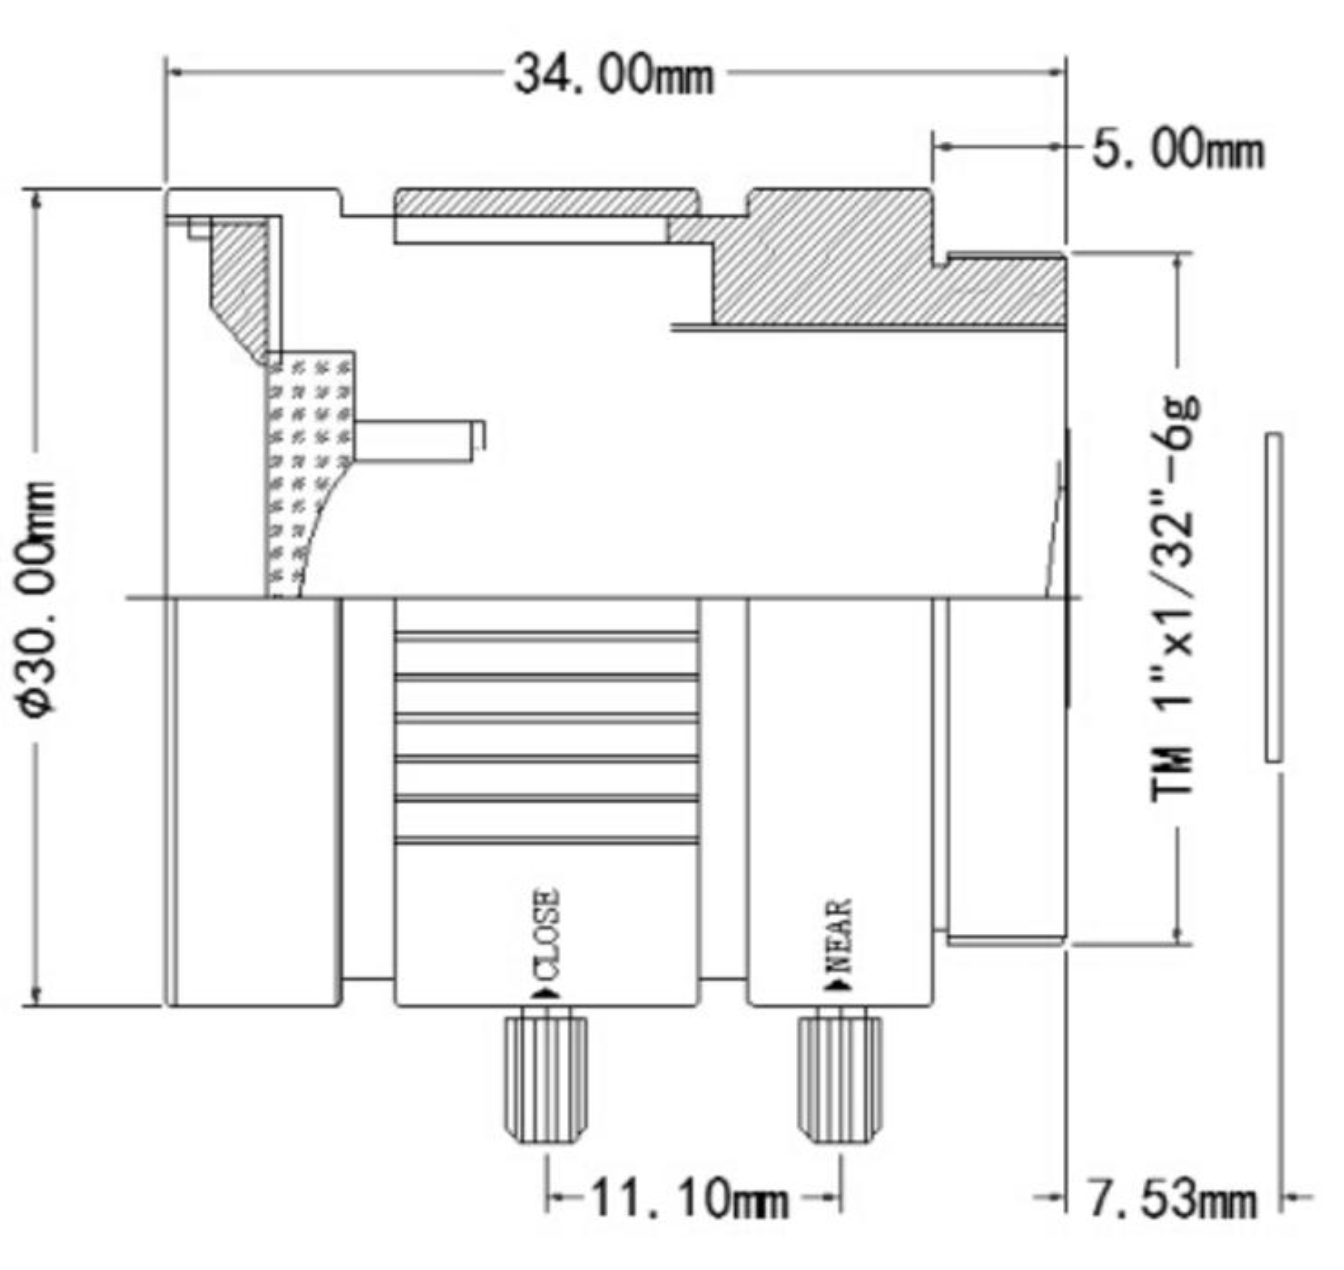 6mm Wide Angle Lens for Raspberry Pi HQ Camera Australian Schematic